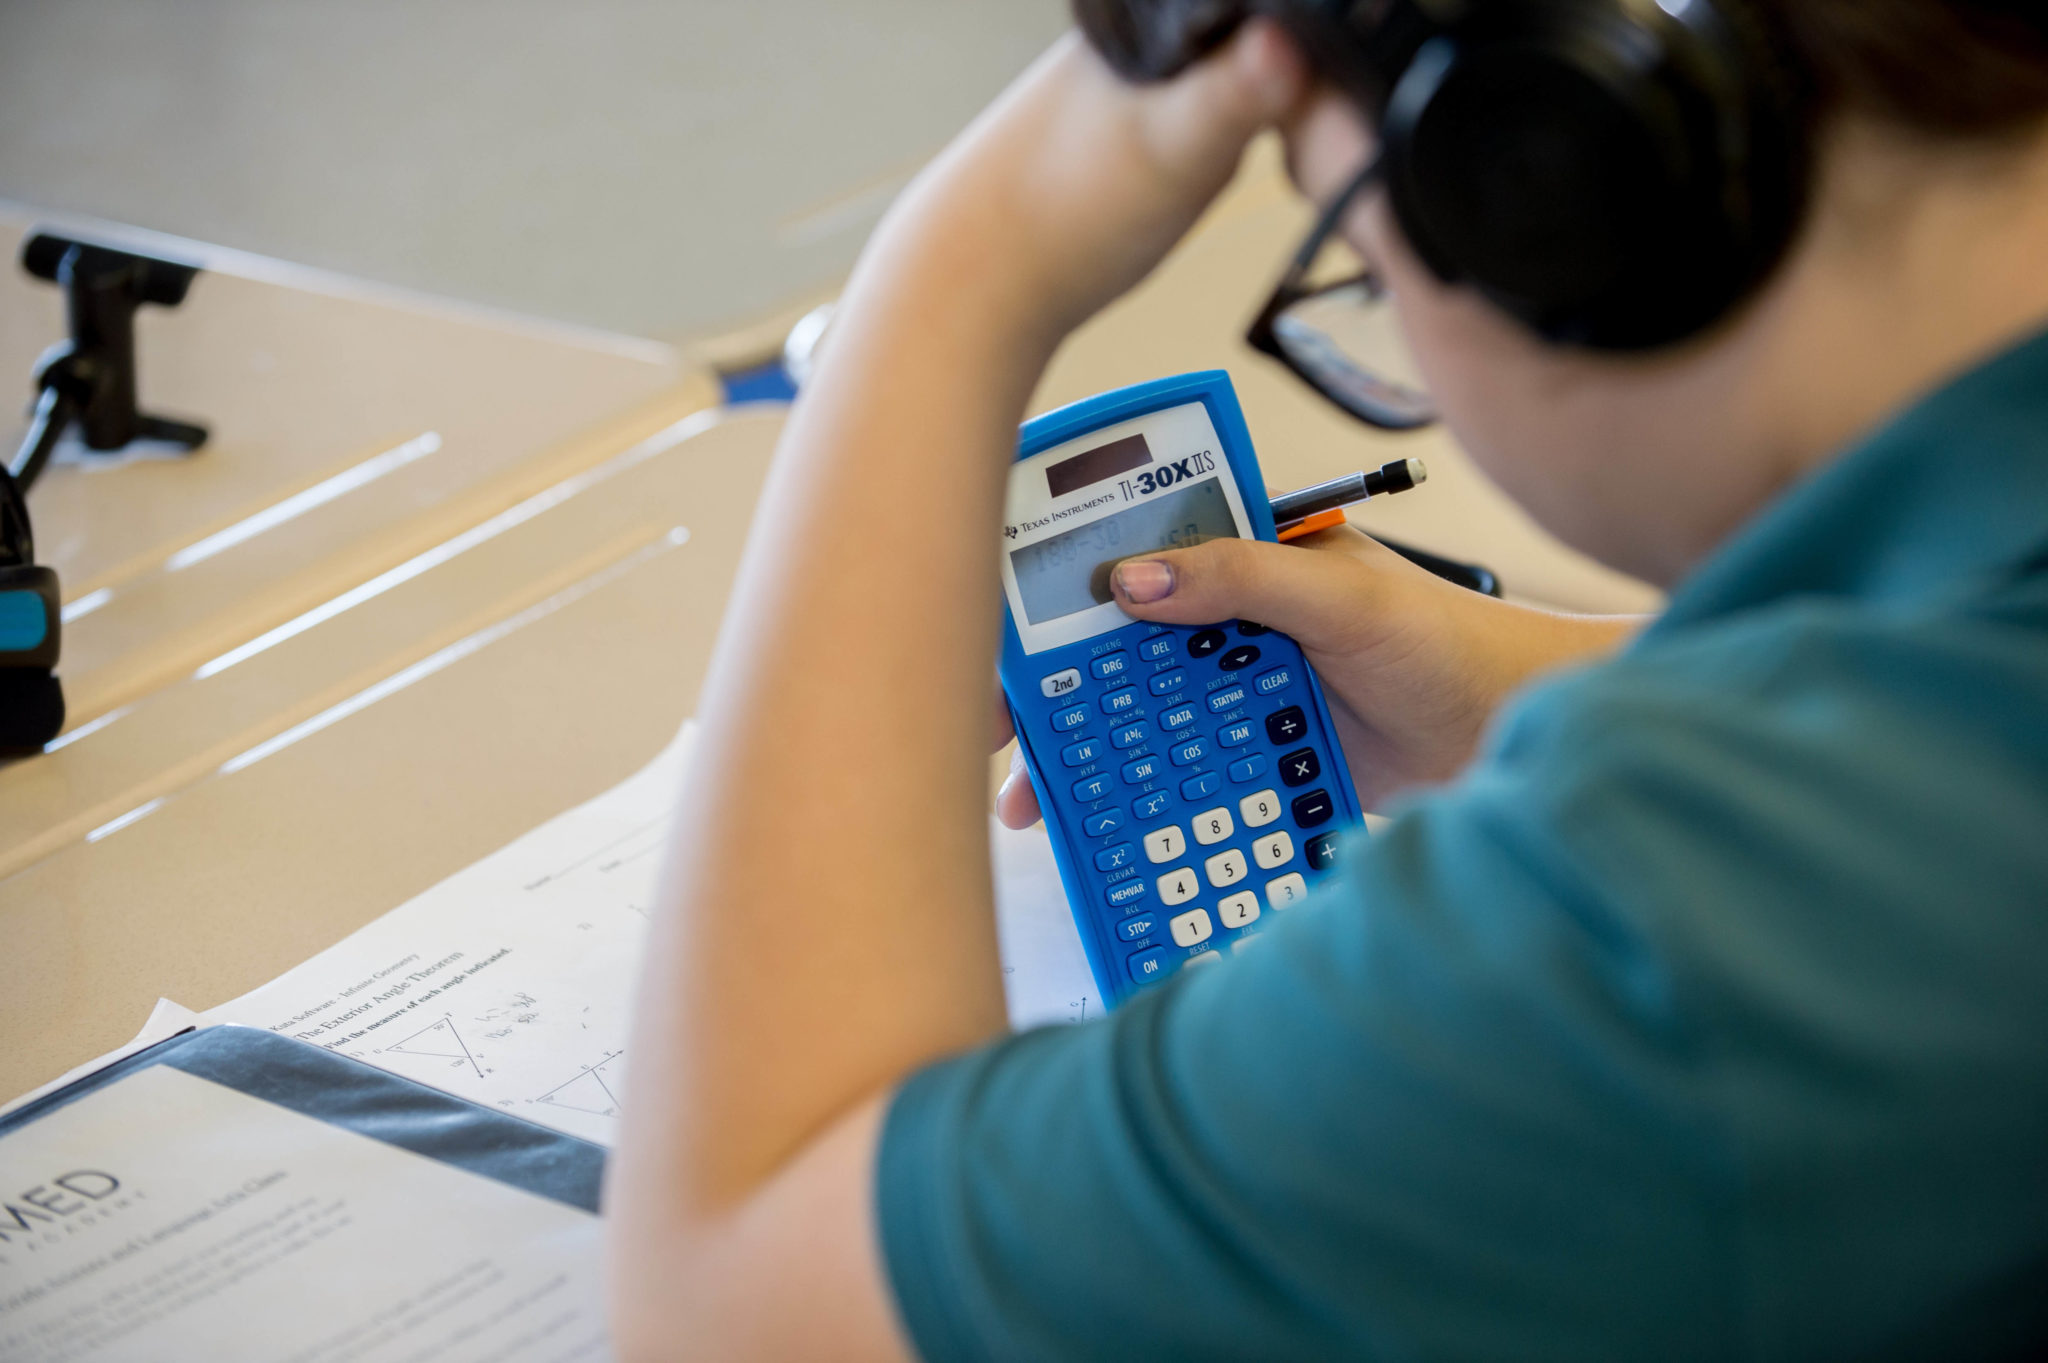 Male student using calculator